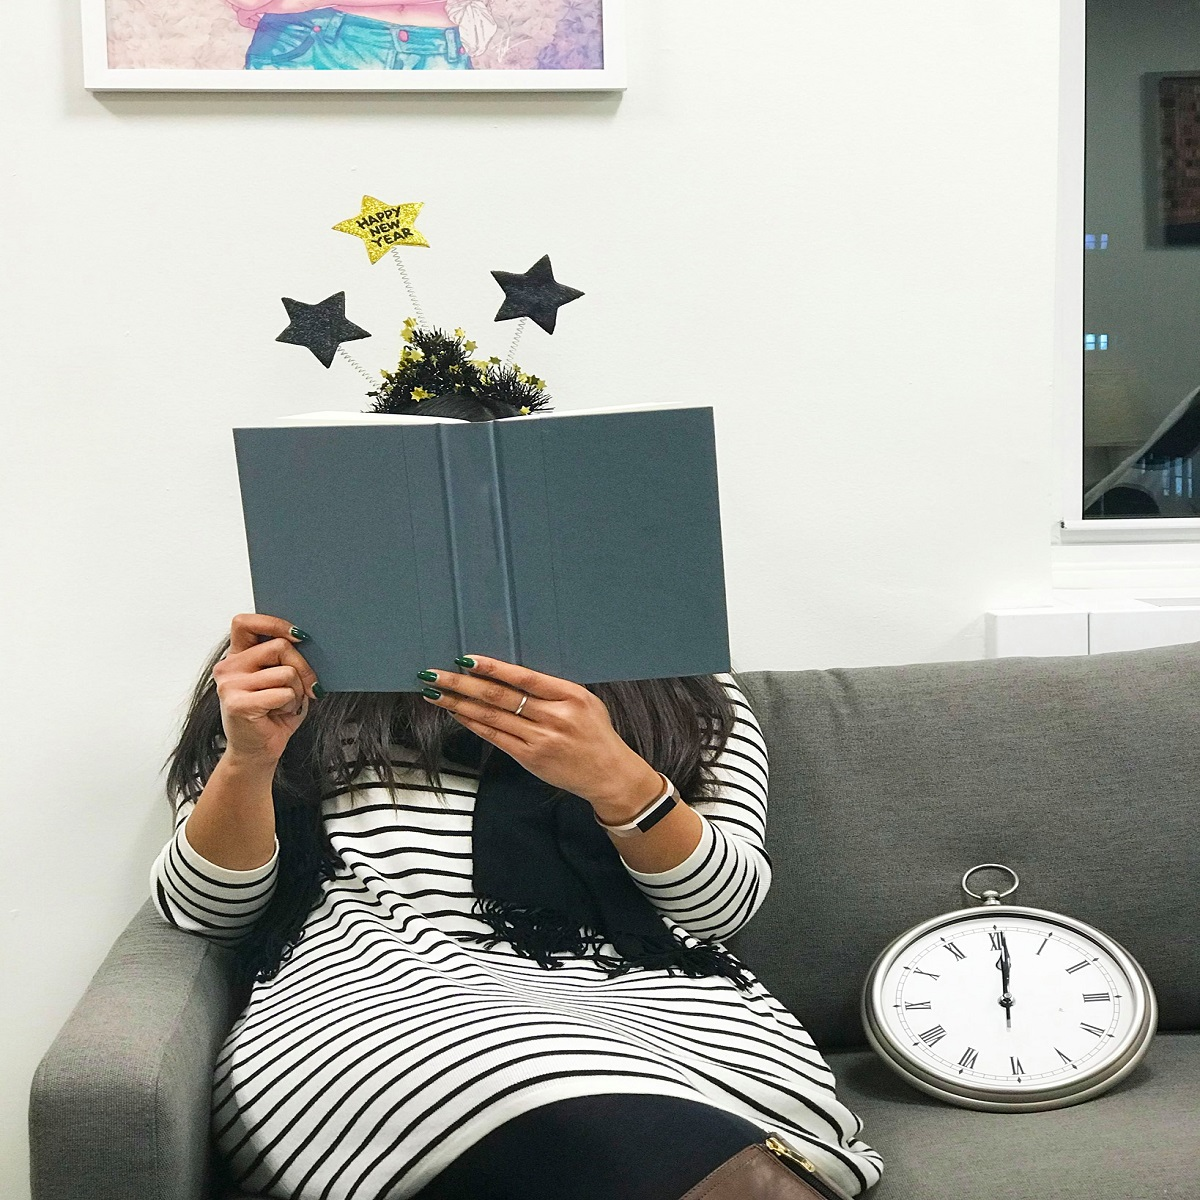 Woman sitting on a couch reading a book on New Years Eve